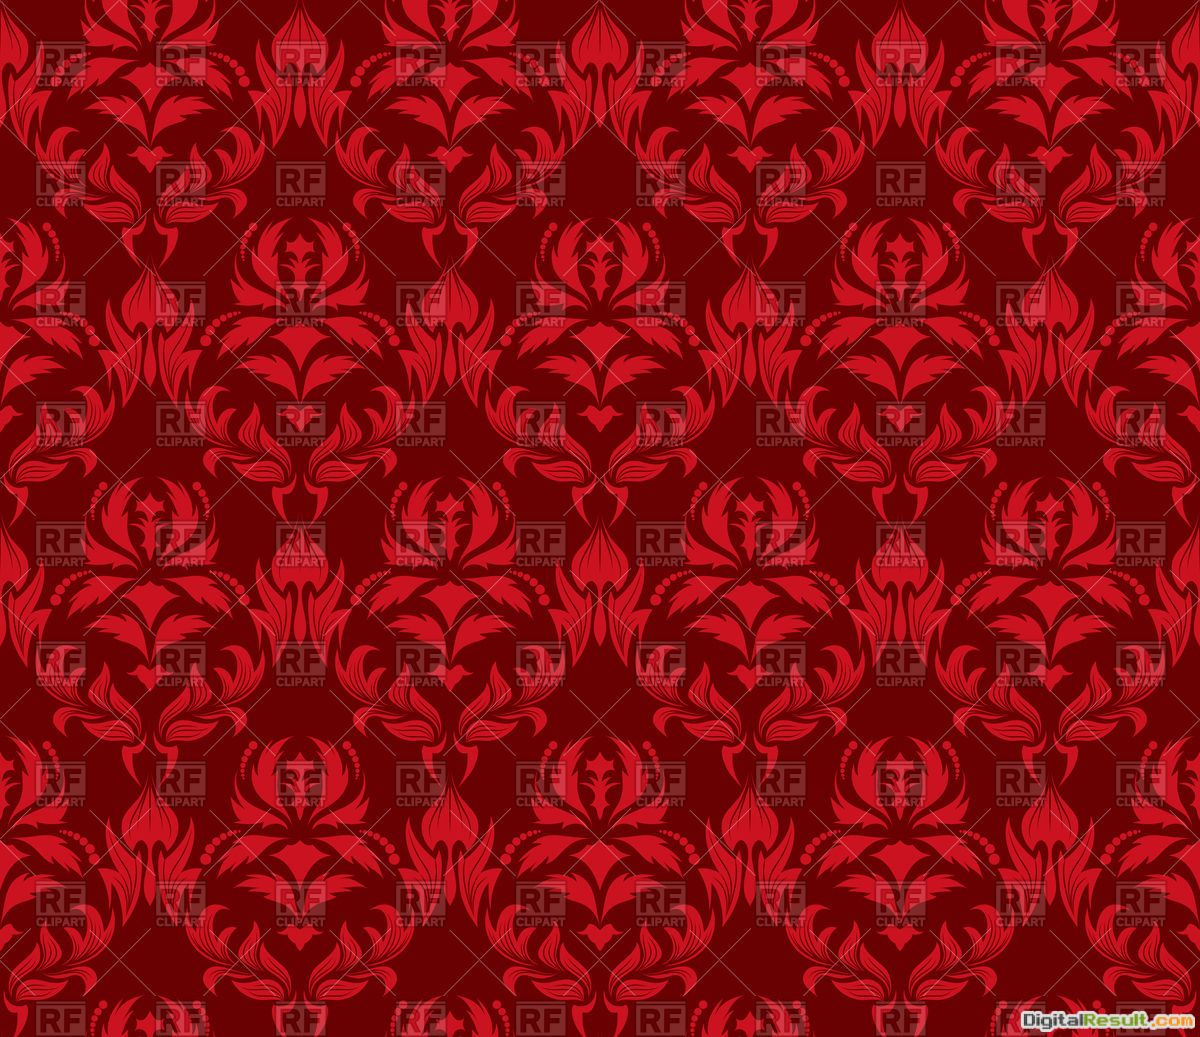 Damask seamless red pattern, 92874, Backgrounds, Textures, Abstract 234